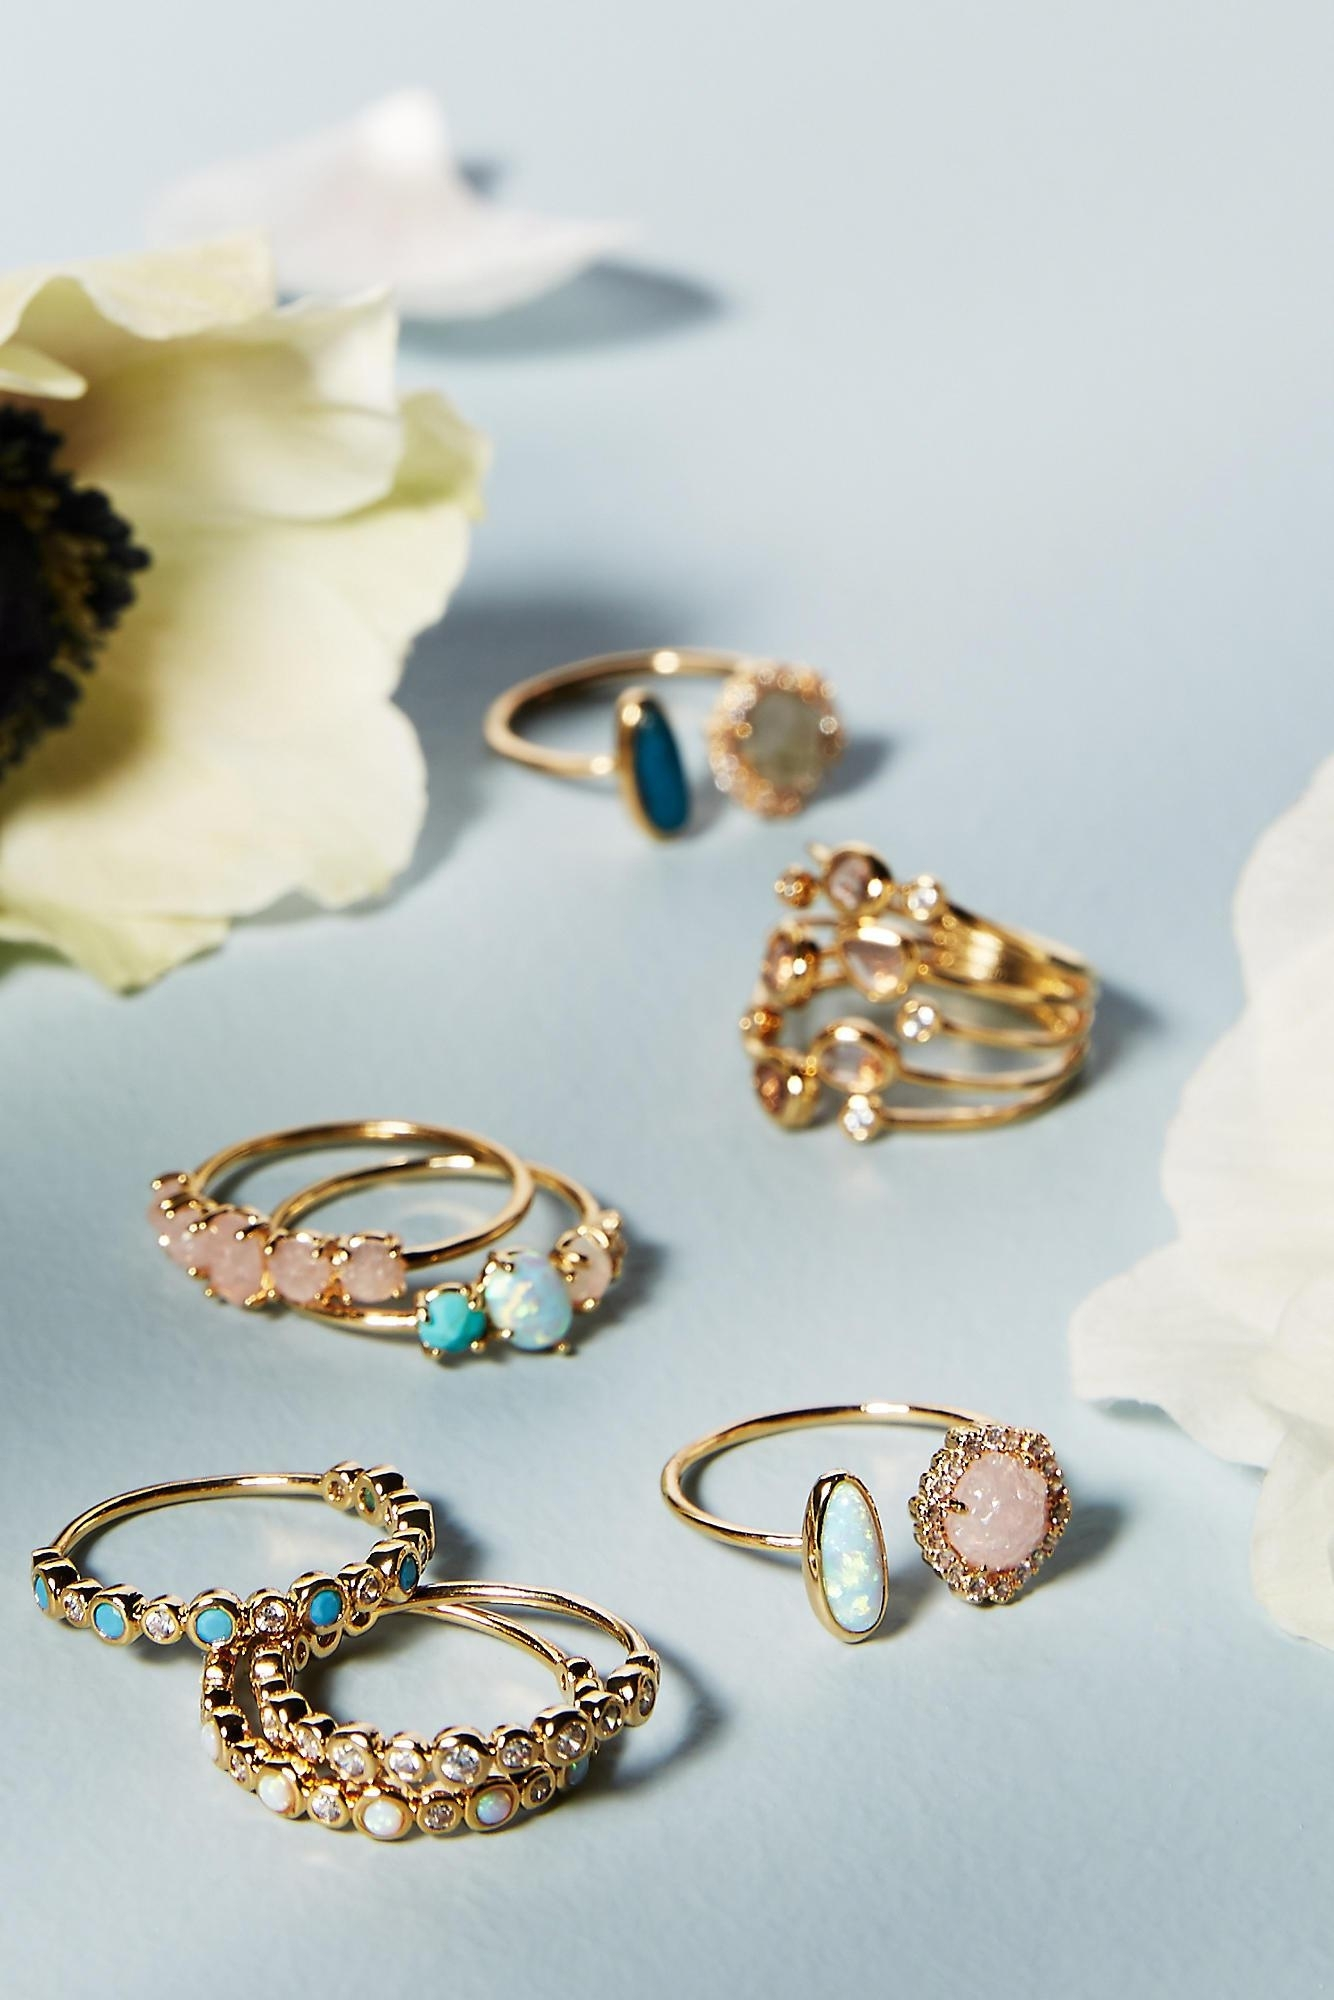 Lyst – Anthropologie Adelaide Ring In Blue Within Best And Newest Adelaide Toe Rings (View 8 of 15)